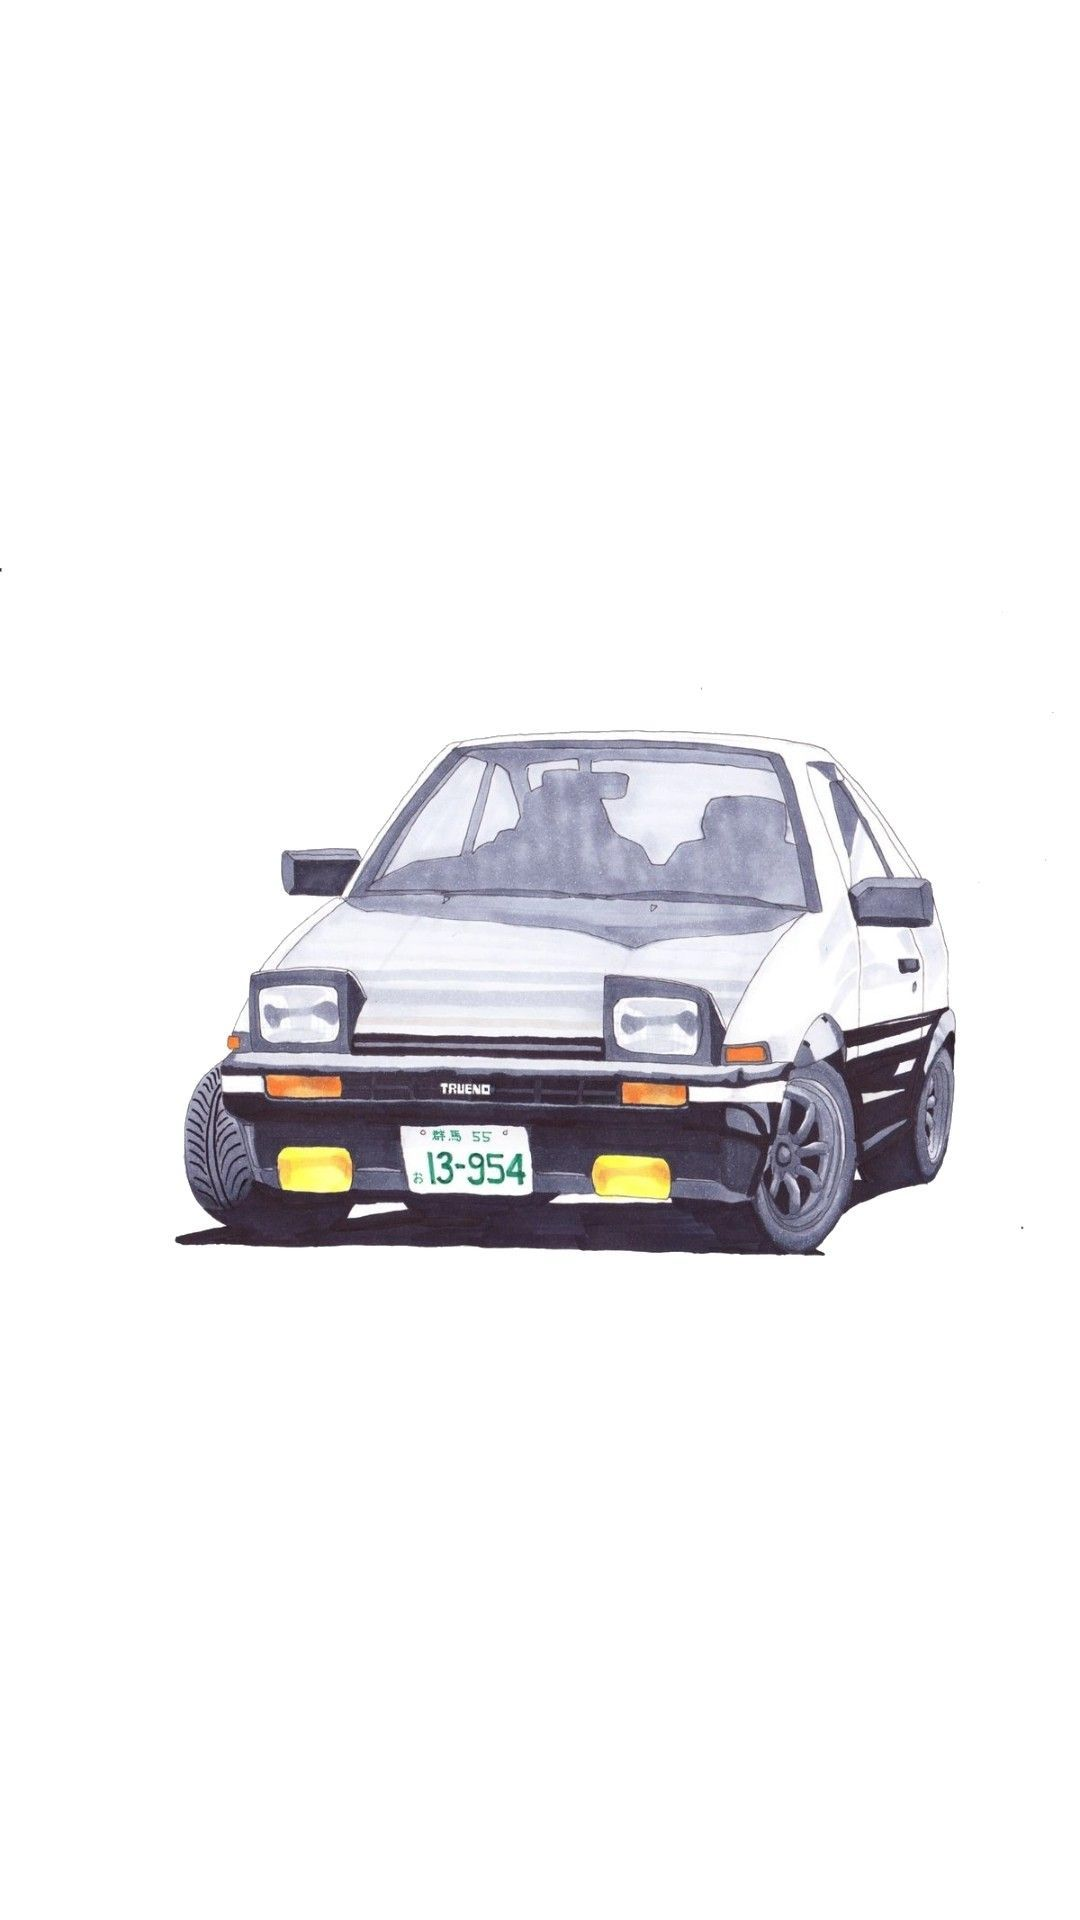 Toyota Ae86 Trueno Initial D Cool Car Pics 2 Automotive Art Cool